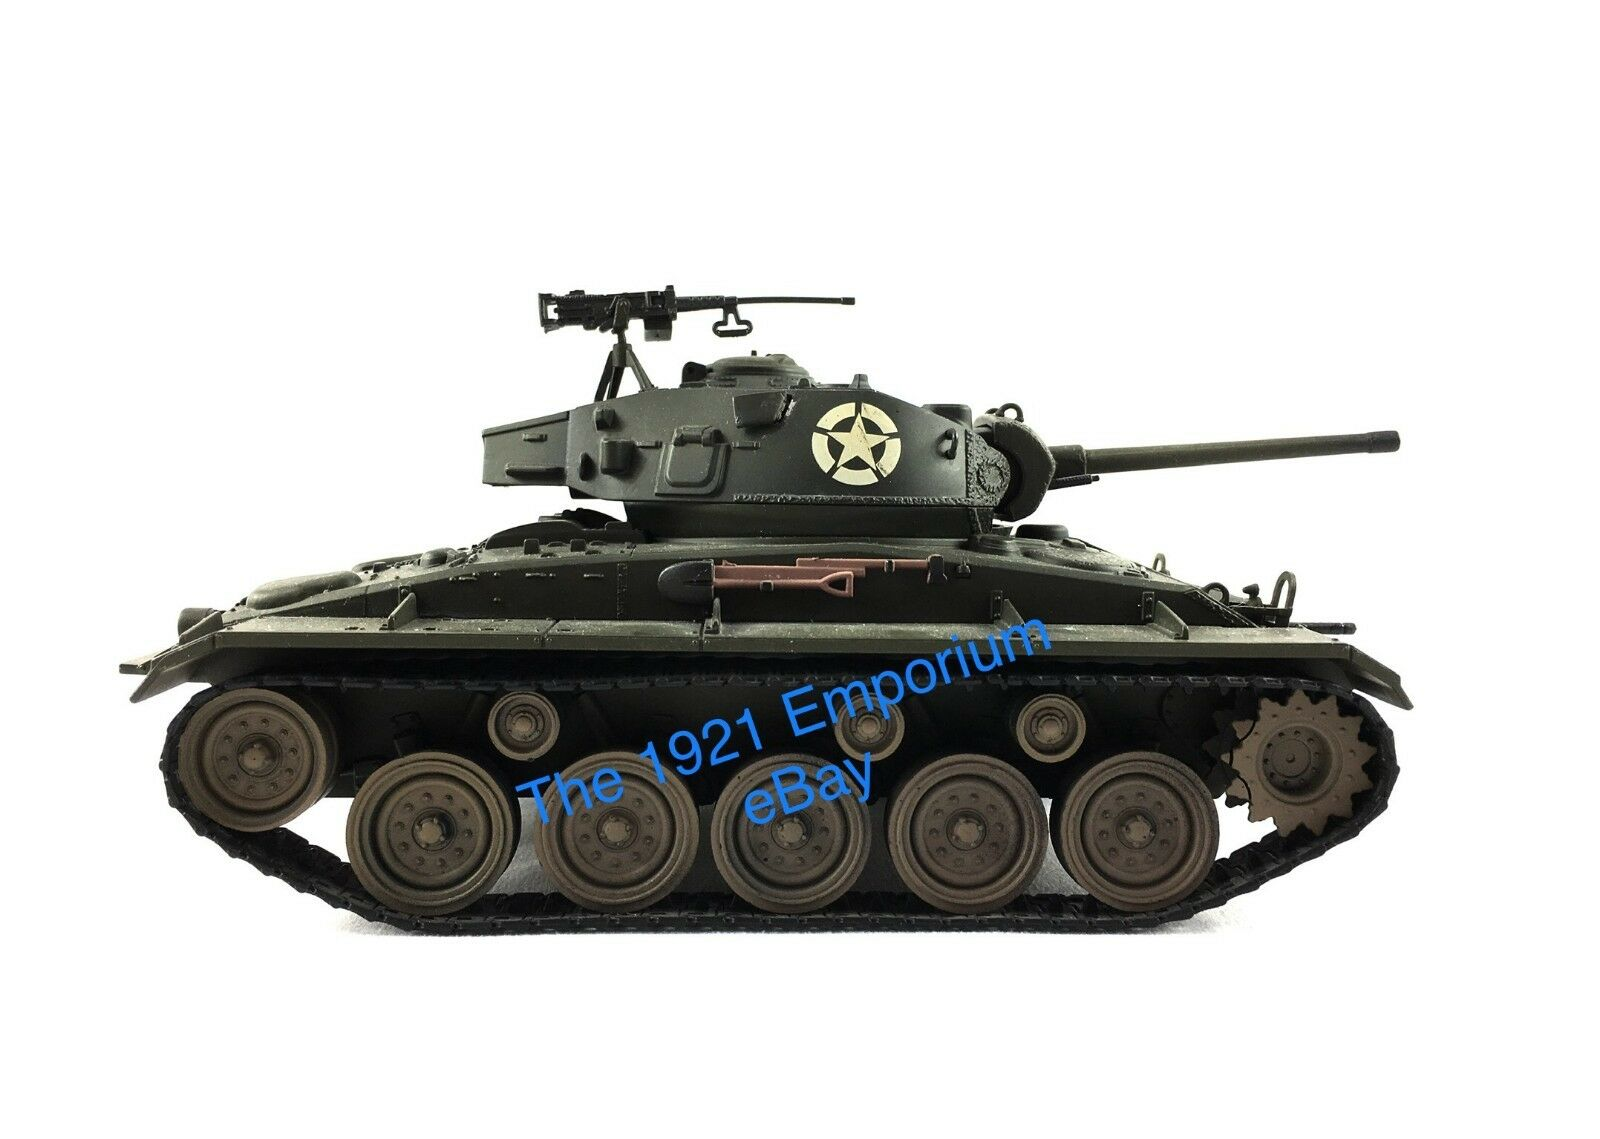 1 32 Diecast Unimax Toys Forces of Valor WWII US Army M24 Chaffee Tank - 54mm